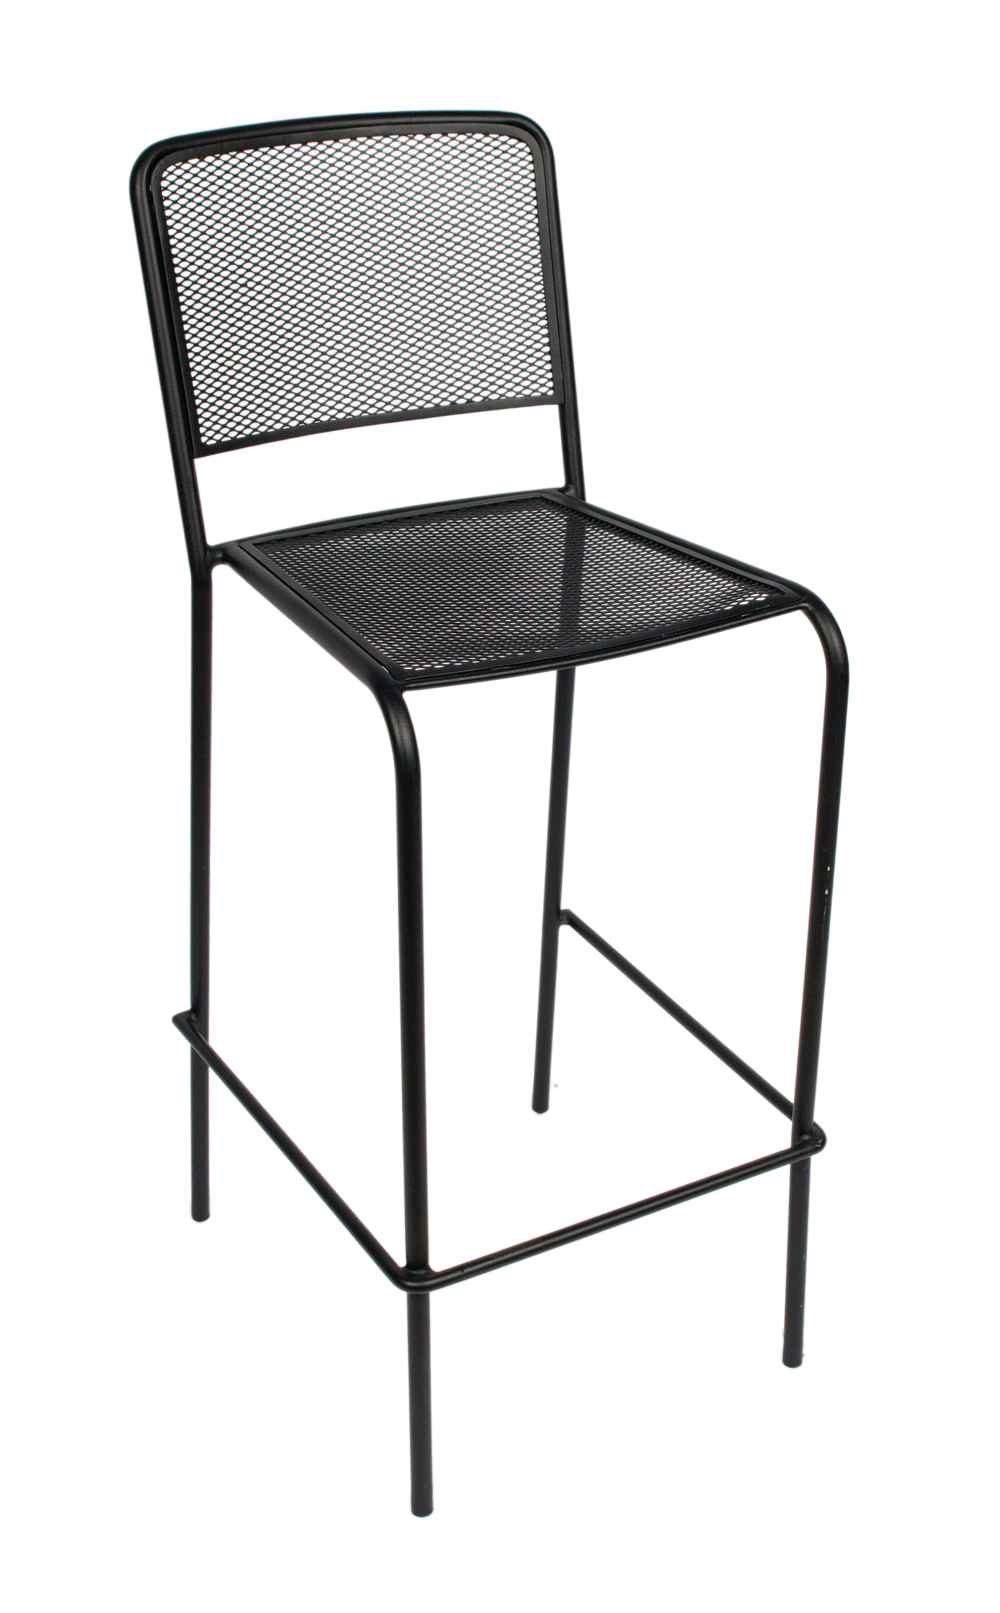 Indoor/Outdoor Galvanized Steel Micro Mesh Seat And Back Stacking Bar Stool  (Chesapeake)